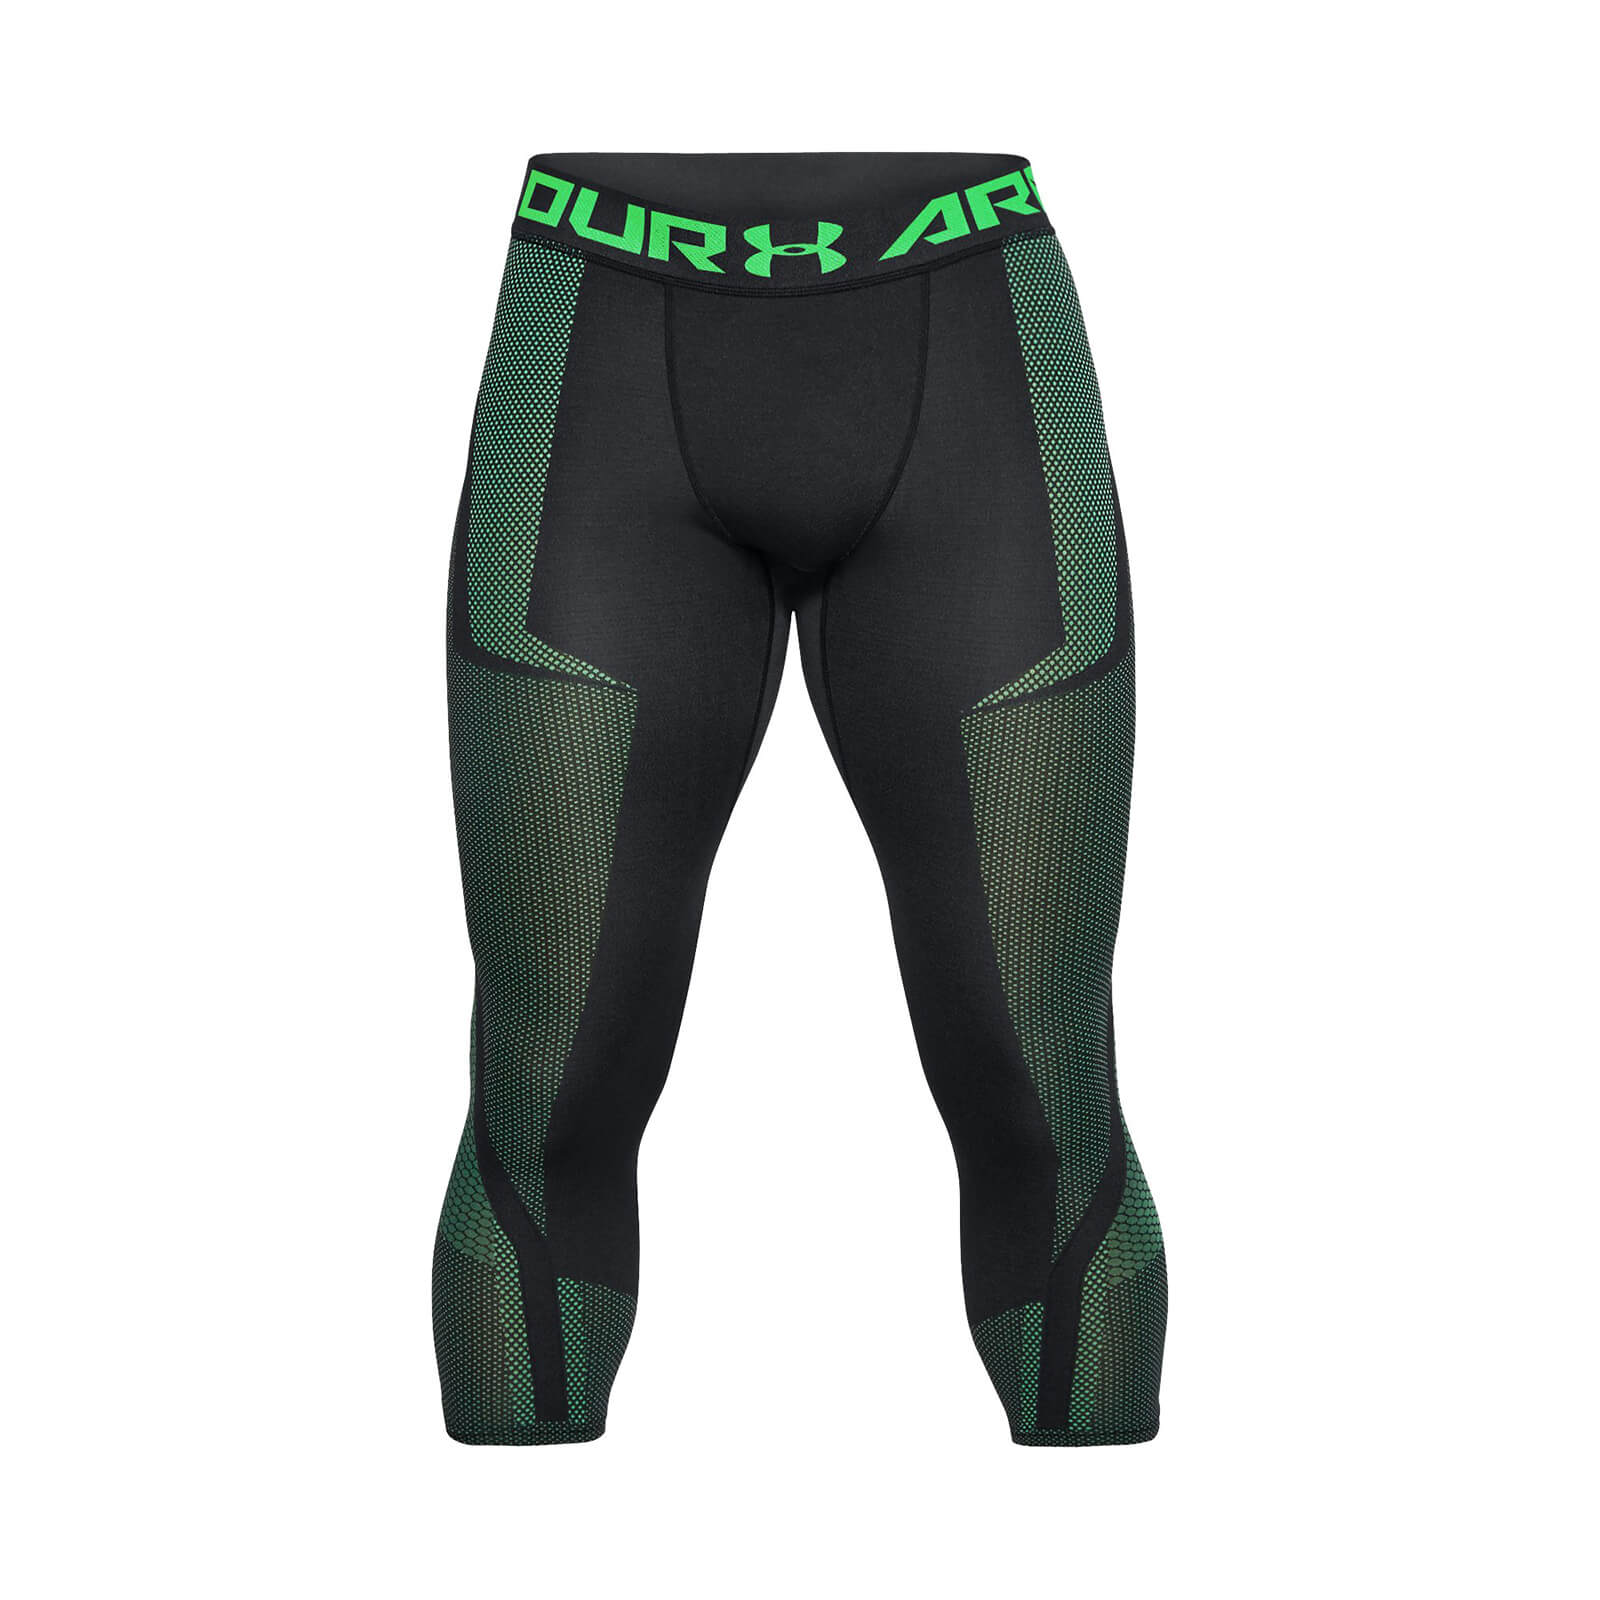 bf9e4b2260 Under Armour Men's Threadborne Seamless 3/4 Leggings - Black/Green |  ProBikeKit.com